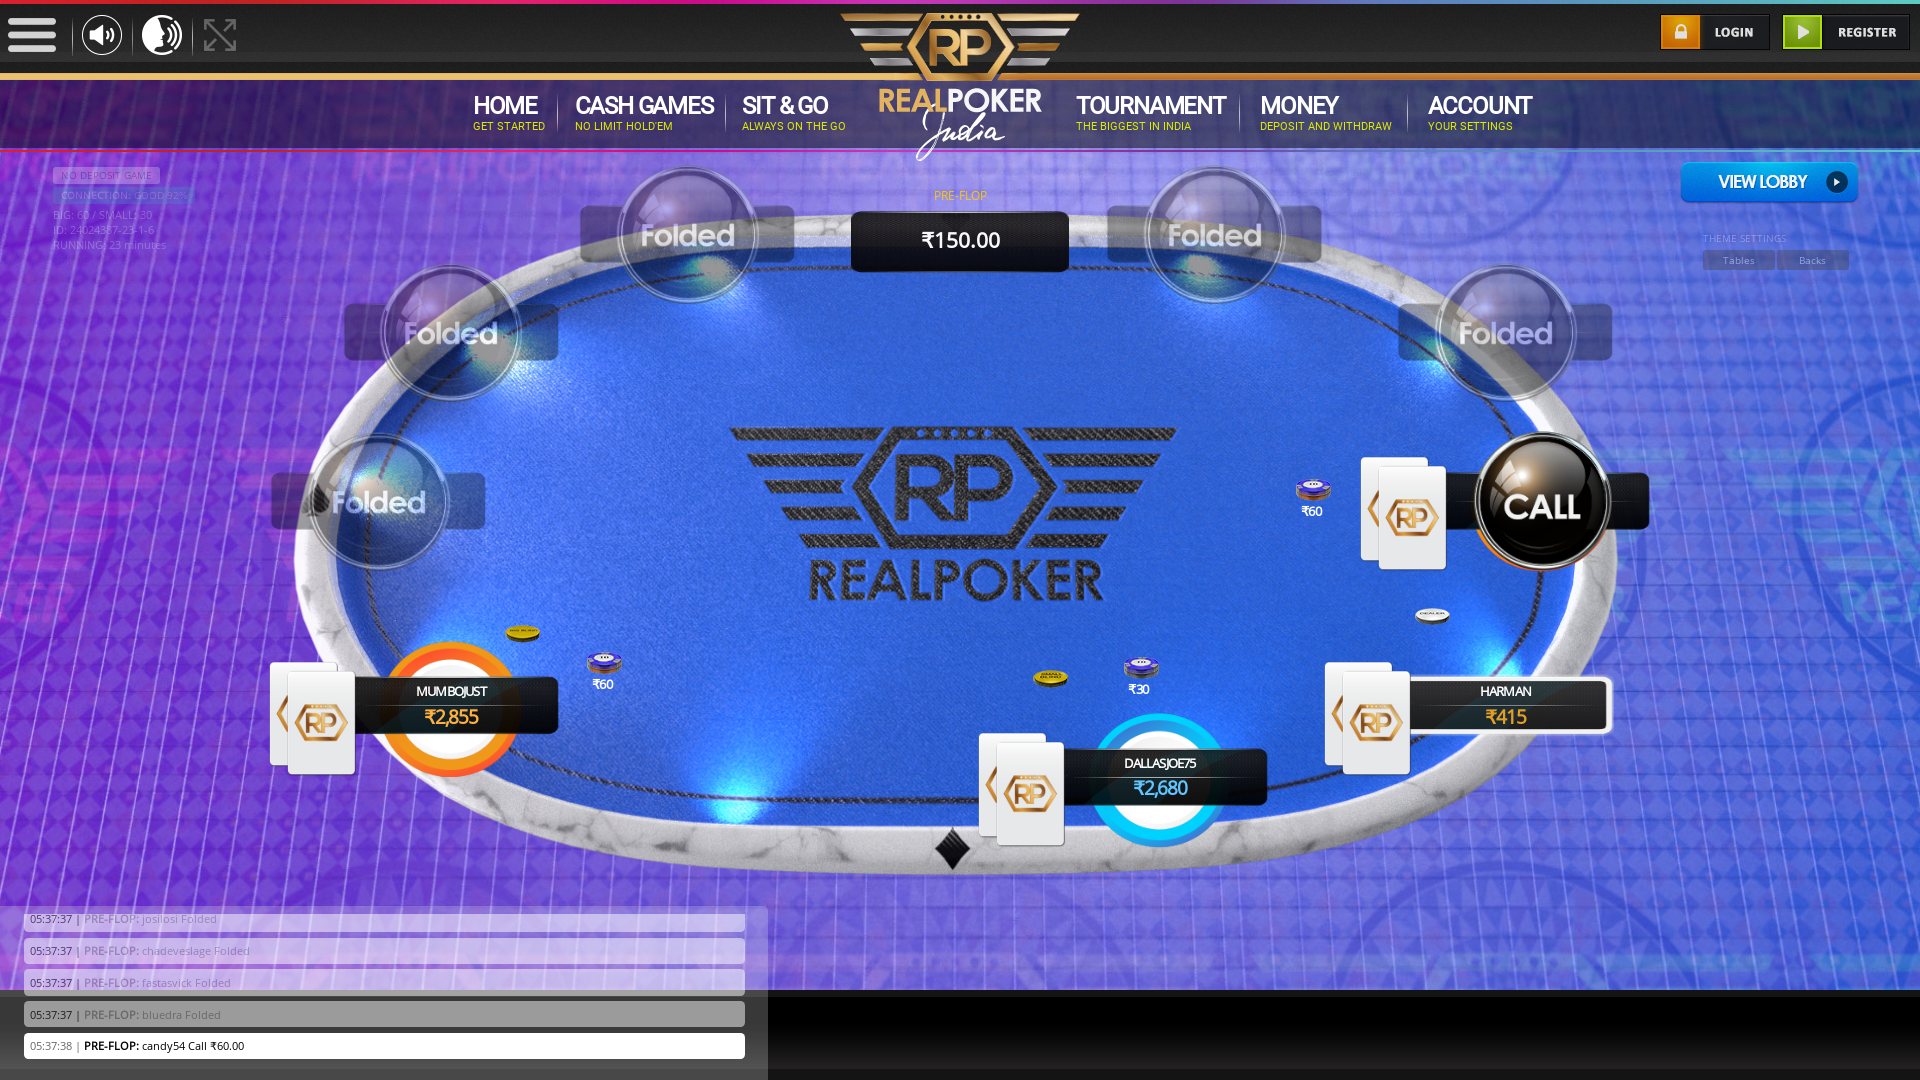 10 player texas holdem table at real poker with the table id 24024387